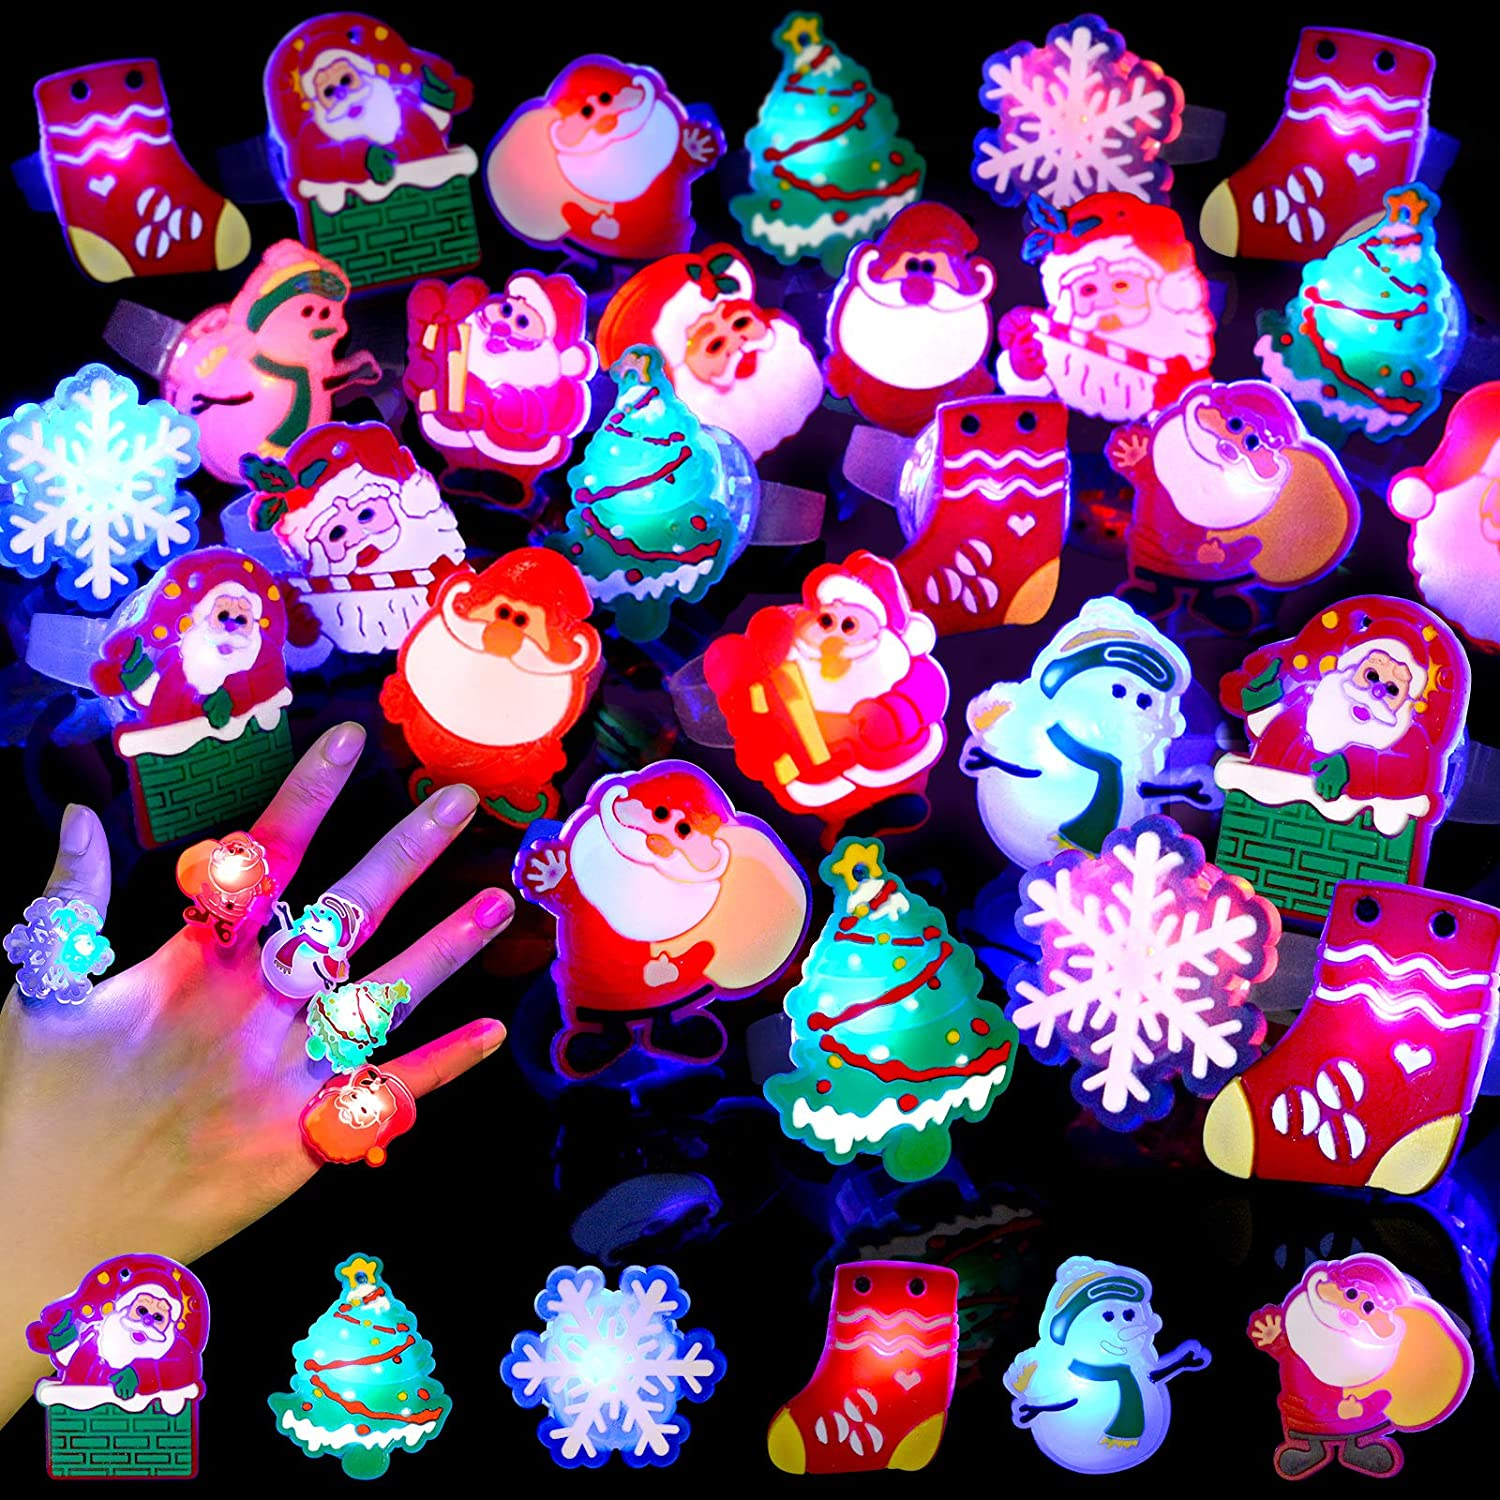 Amazon Com Budi 50pcs Christmas Party Favors Led Finger Lights For Kid Adults Light Up Rings Stocking Stuffers Light Up Toys Rings Party Decorations Assorted Styles With Gift Package Toys Games